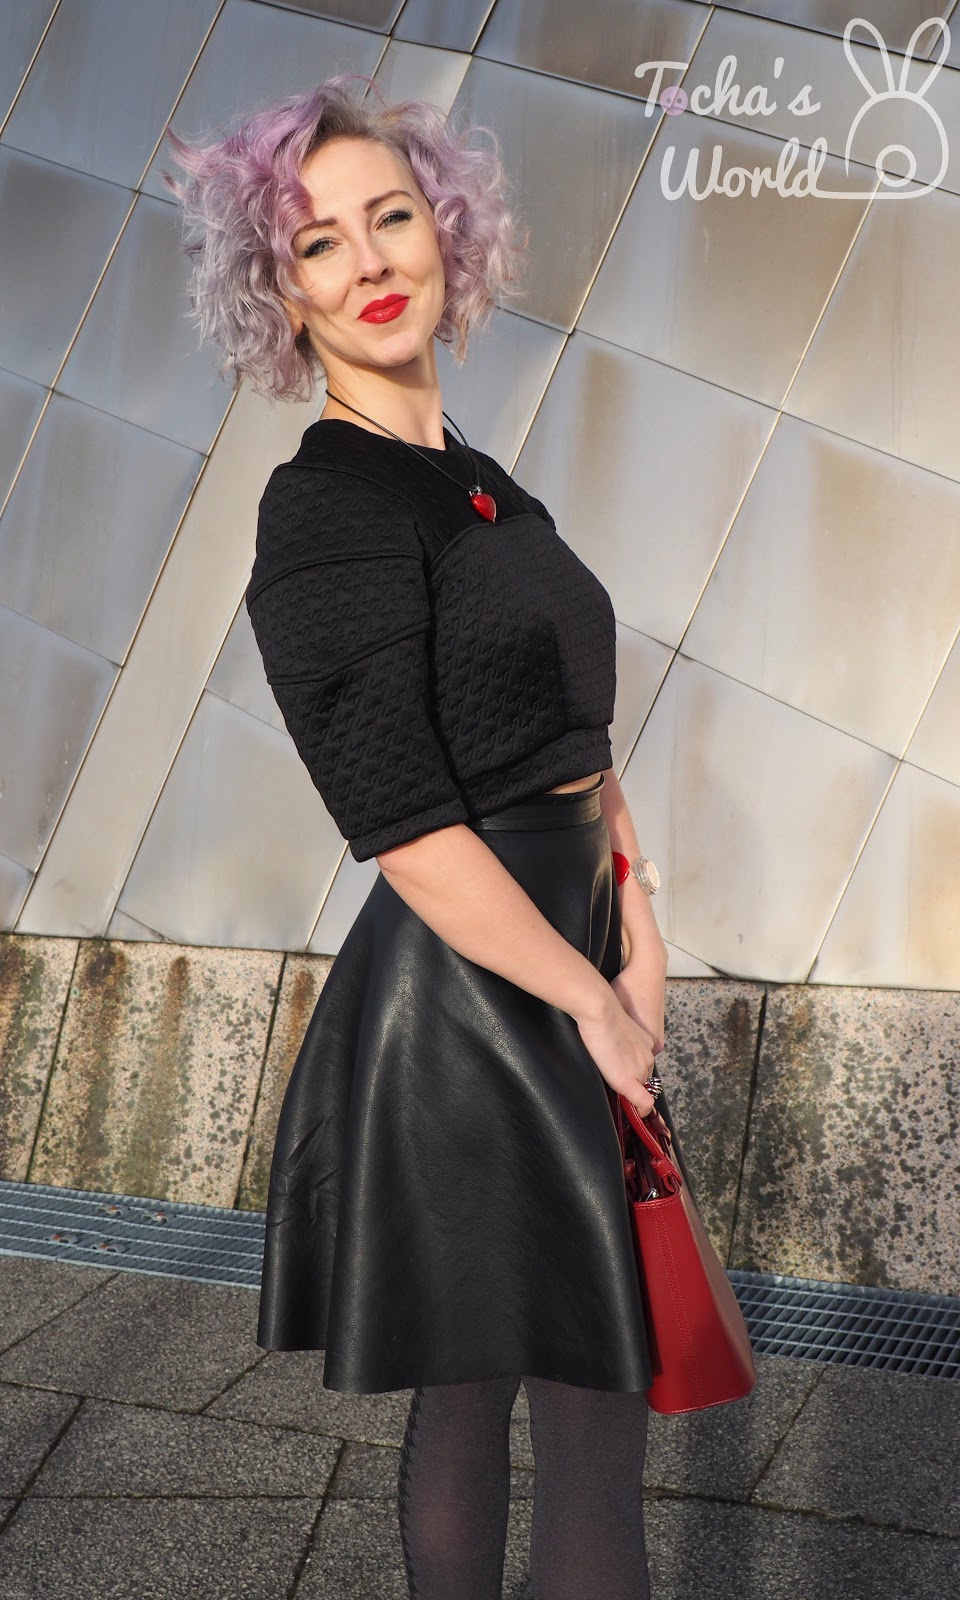 Armadillo, Black Milk bummers, Calzedonia, Clyde Auditorium, crop top, Descience, Glasgow Clyde College, Glasgow Science Centre, hot pants, houndstooth, Raglan sleeve, Remnant Kings, scuba, semi-circle skirt, yoke,